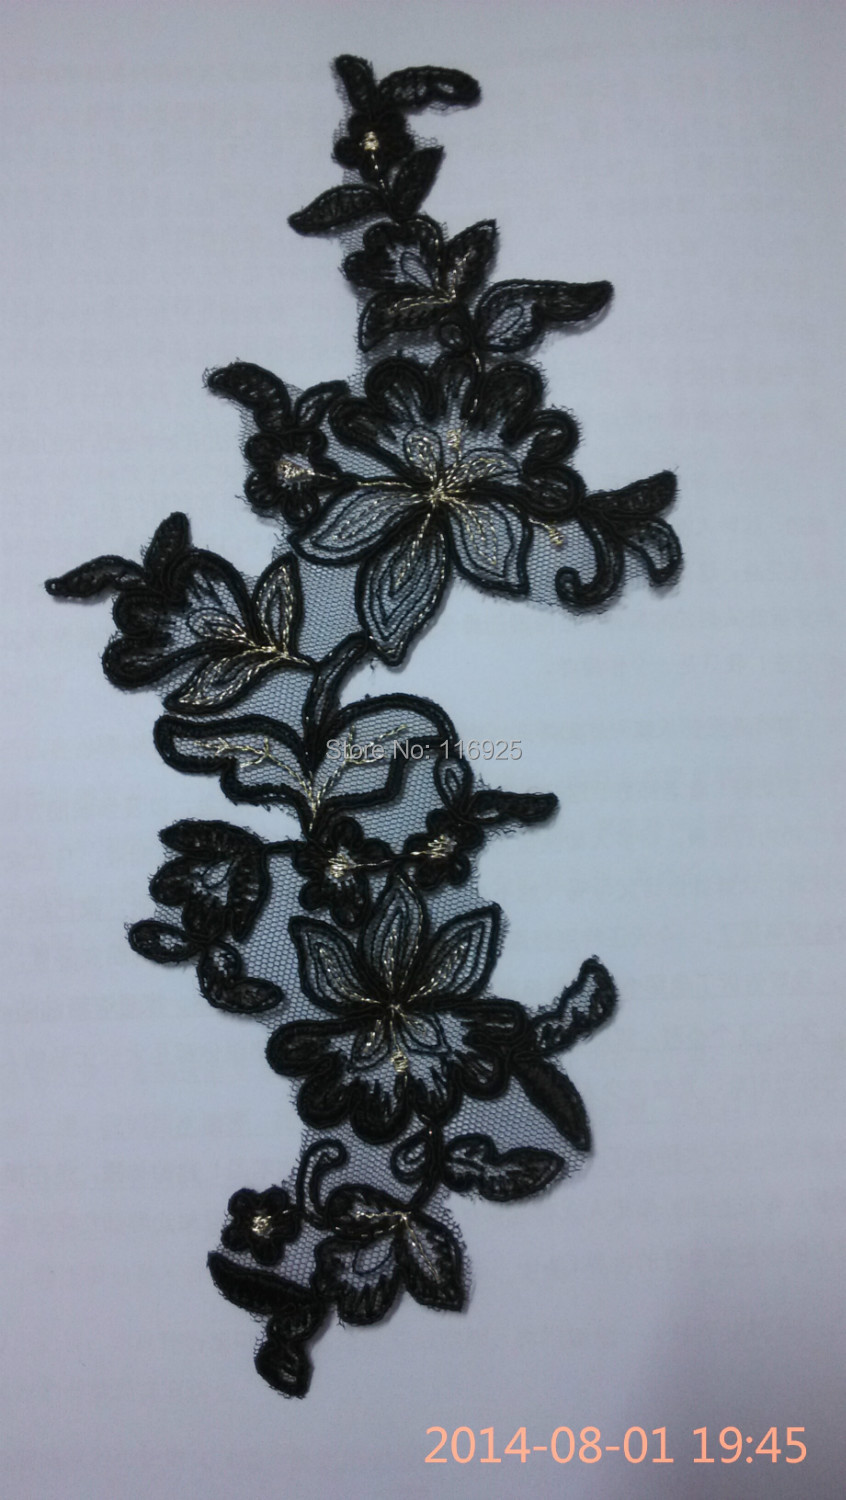 Black Embroidery Lace Motif With Corded and Gold Matallic Thread Embroidery Applique,12 pcs/lot